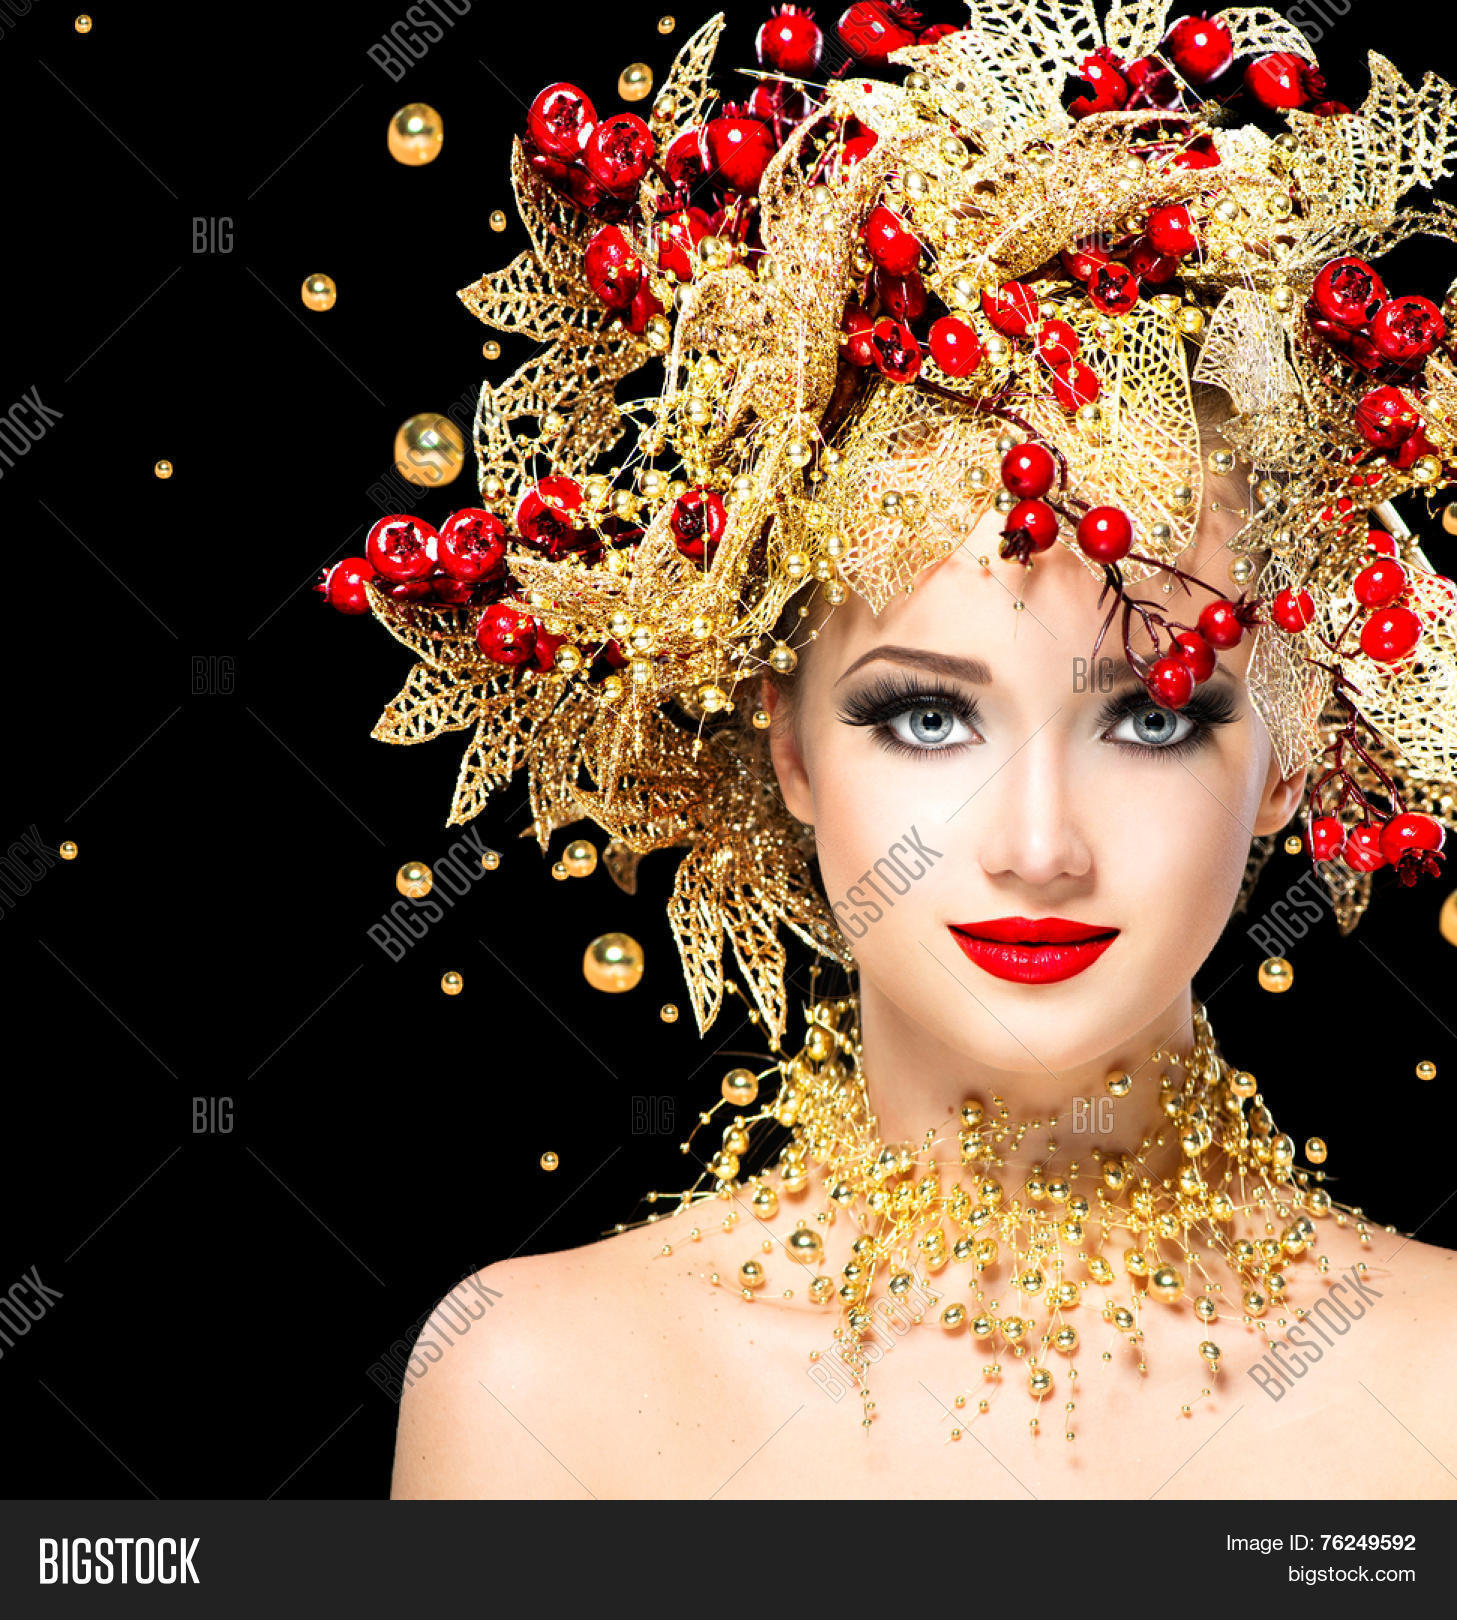 Christmas Hairstyles For Black Girls.Christmas Winter Image Photo Free Trial Bigstock